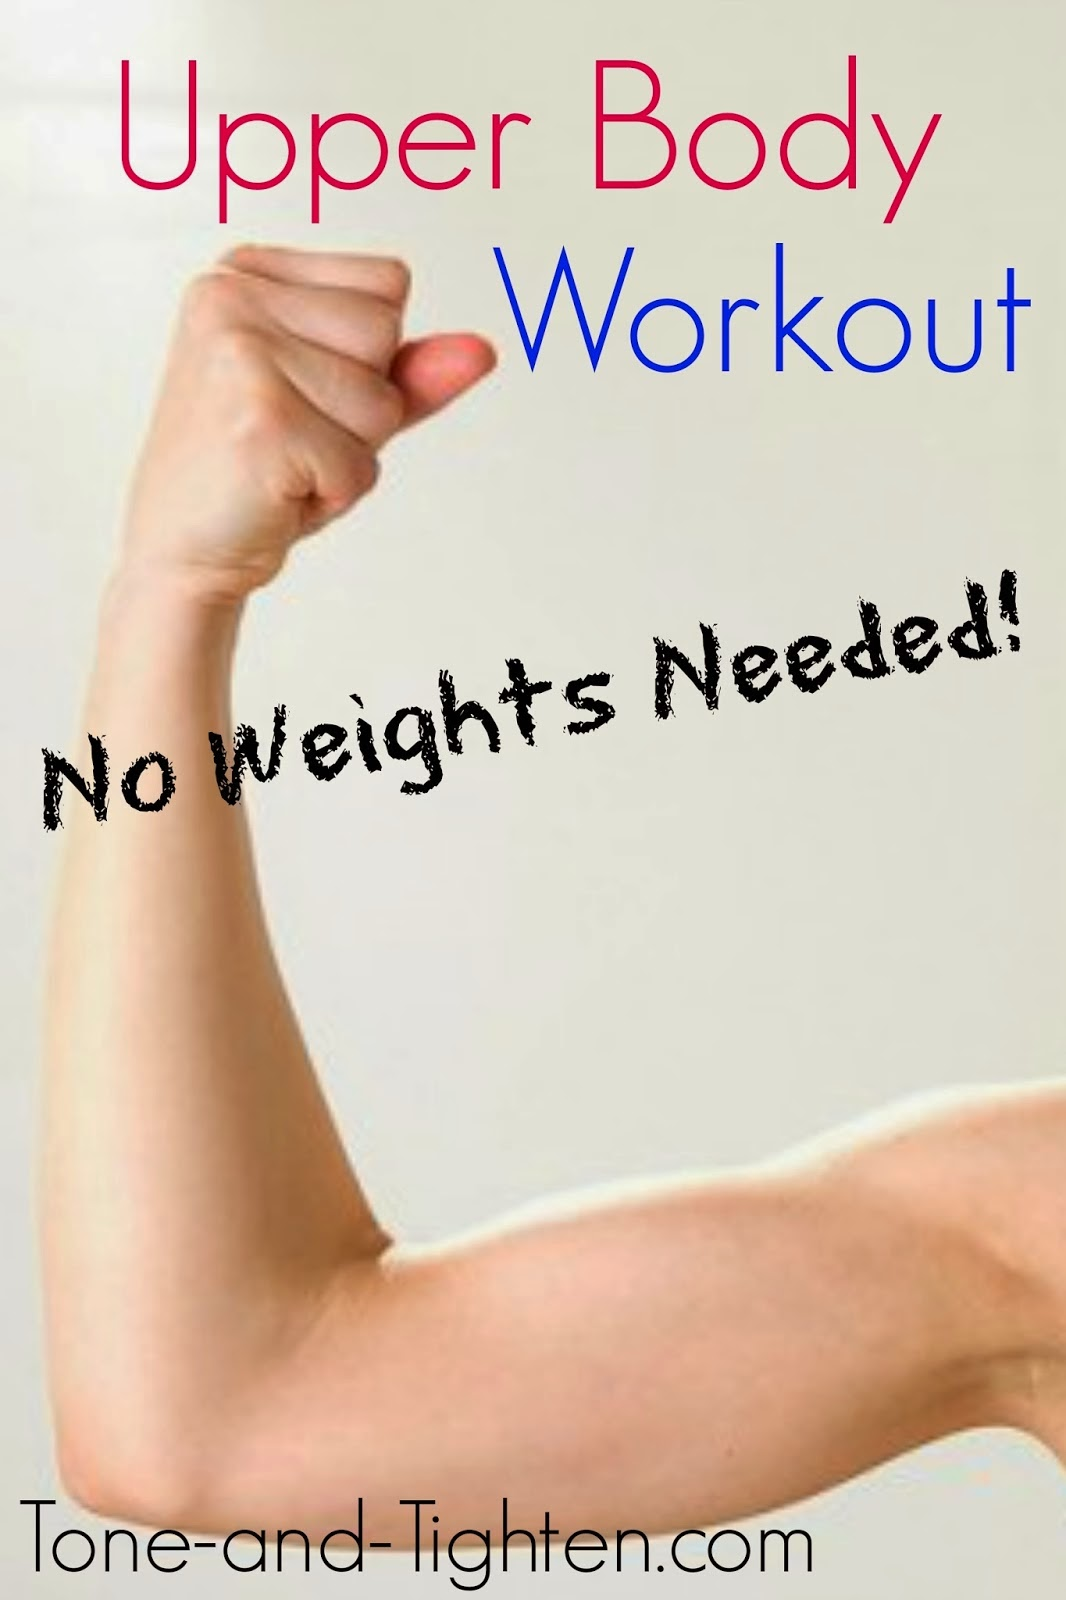 http://tone-and-tighten.com/2014/01/upper-body-workout-without-weights.html